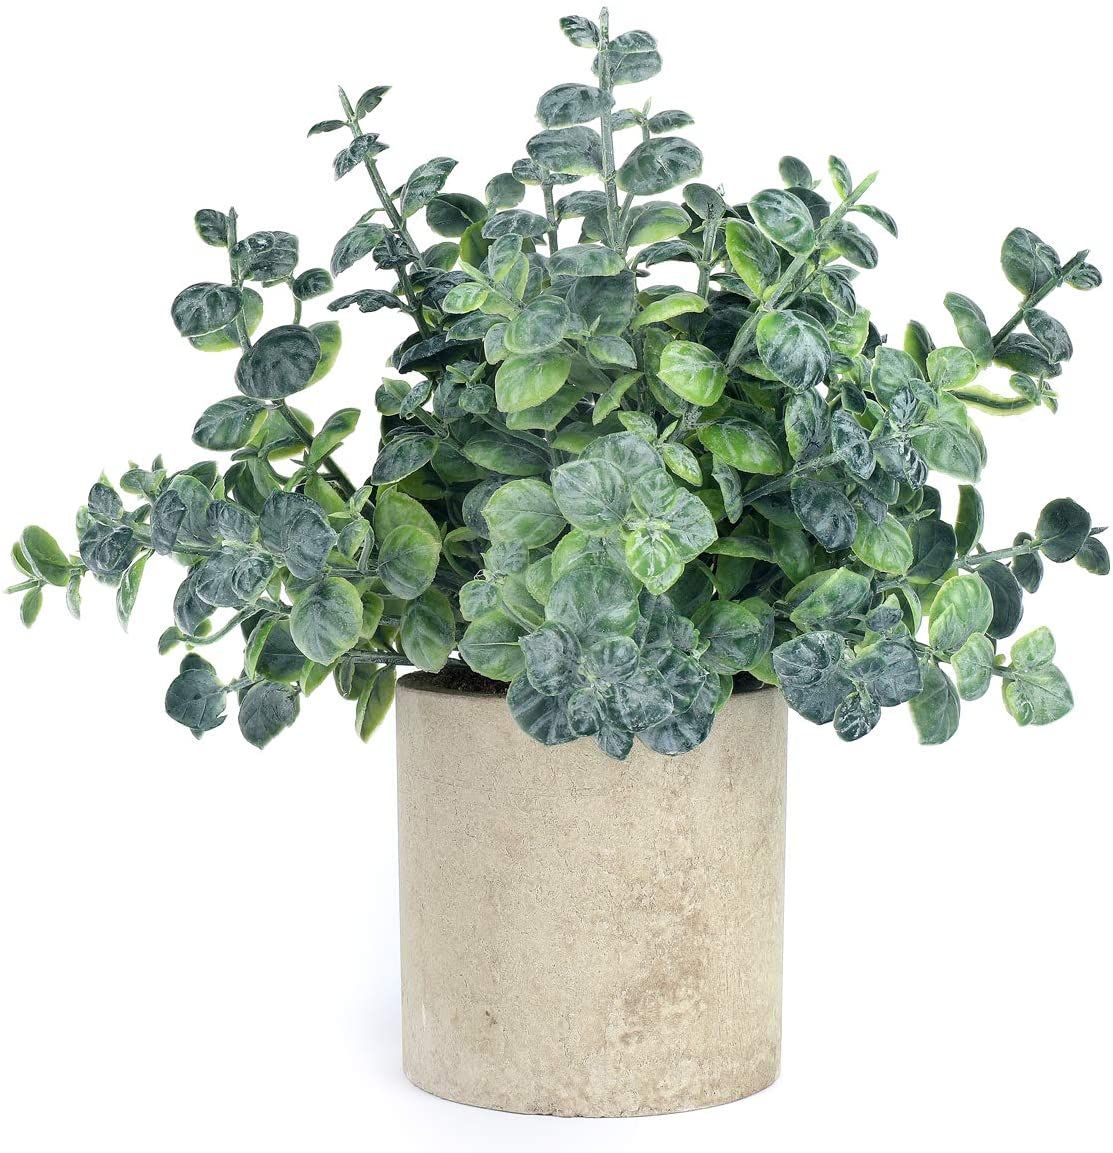 iFLOVE Small Fake Plastic Plant Artificial Eucalyptus Potted Plant Look Real Greenery Decor Home Office Desk(Grey Green)